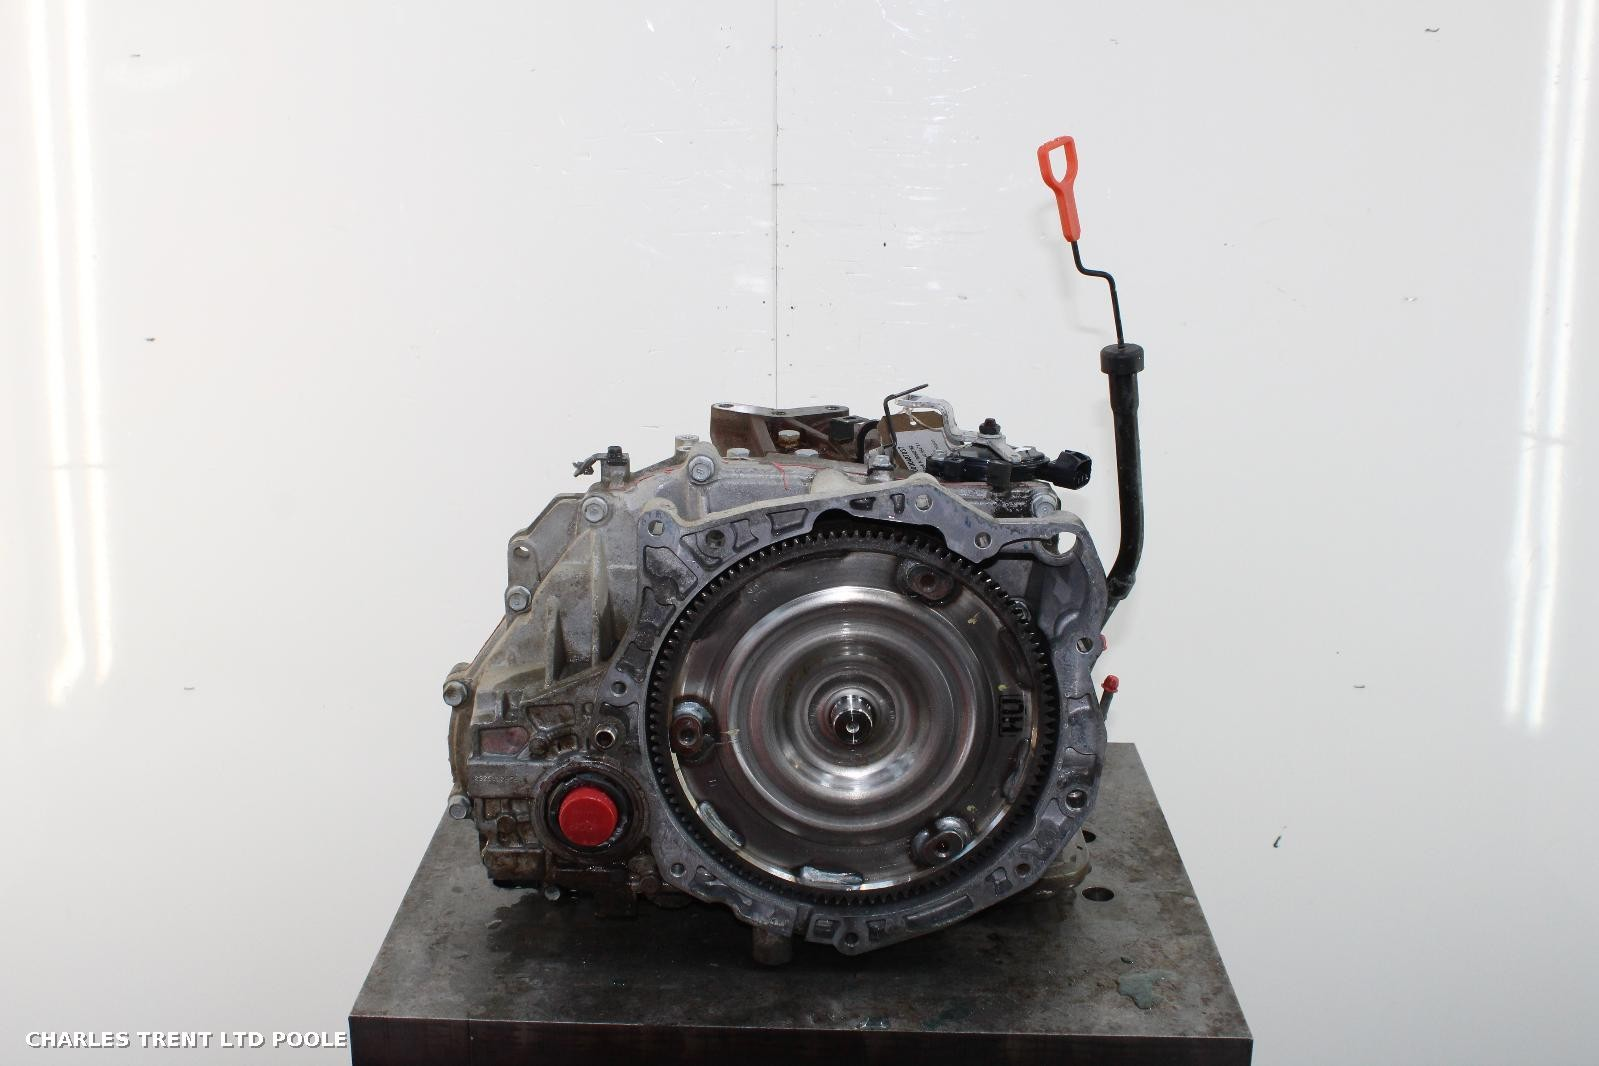 2009 - HYUNDAI - I20 - GEARBOXES / TRANSMISSIONS